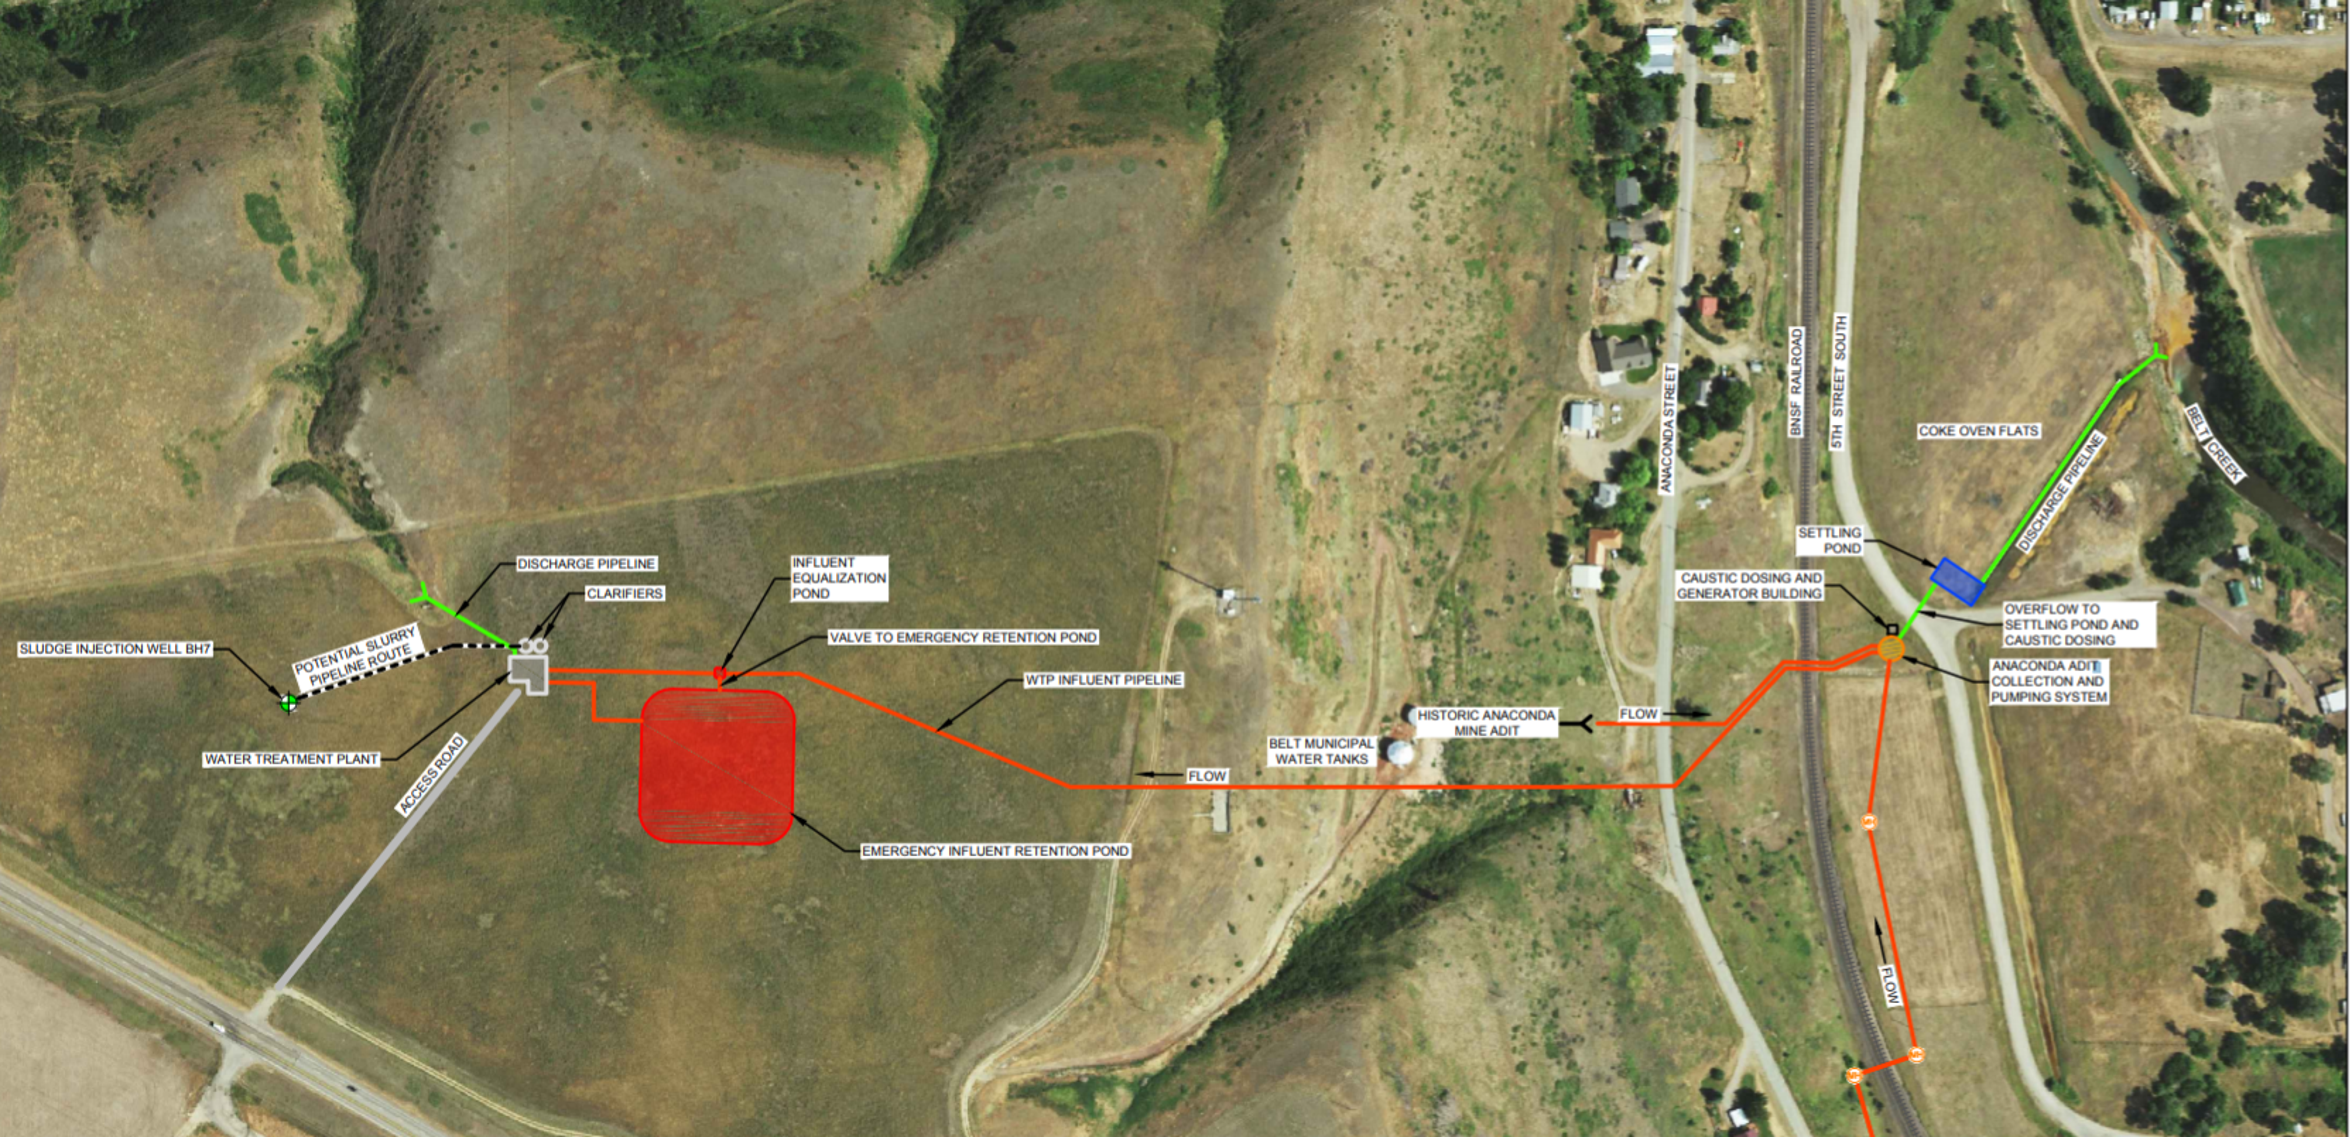 This draft shows the preliminary layout of a water treatment system that will capture and pump water to a treatment plant located on bluff above Belt. The treatment plant is shown on the far left of the image. The creek is located on the far right. The red  lines are pipes that would carry the captured polluted water up to the treatment plant. Treated water would be released in a coulee that eventually would make its way to the creek. Sludge left behind would be injected into the old mine.